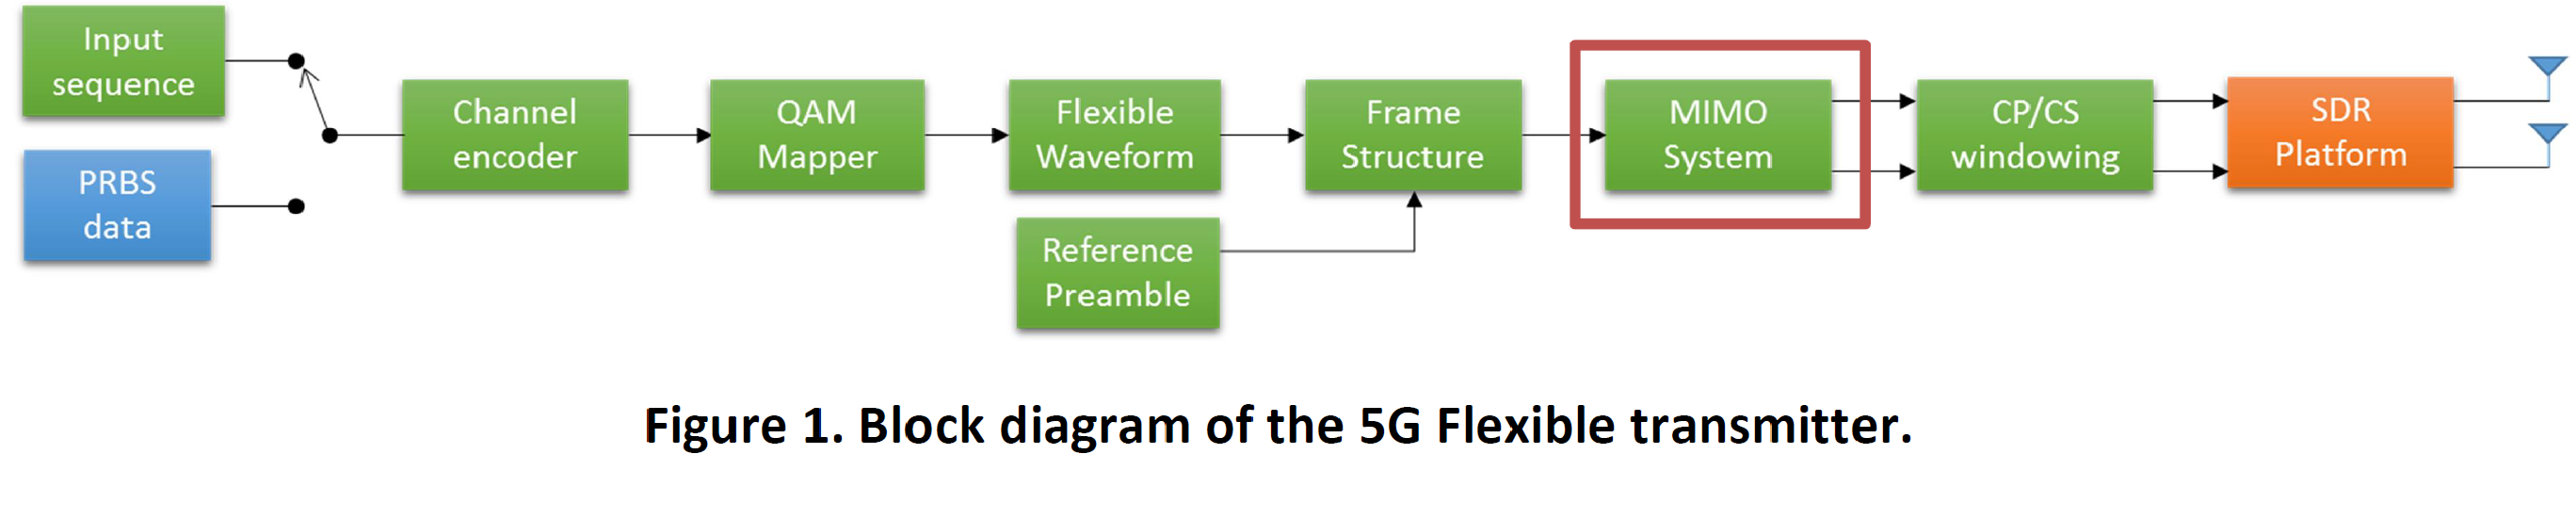 GitHub - ewine-project/5G-Flexible-Transceiver-for-Physical-Layer